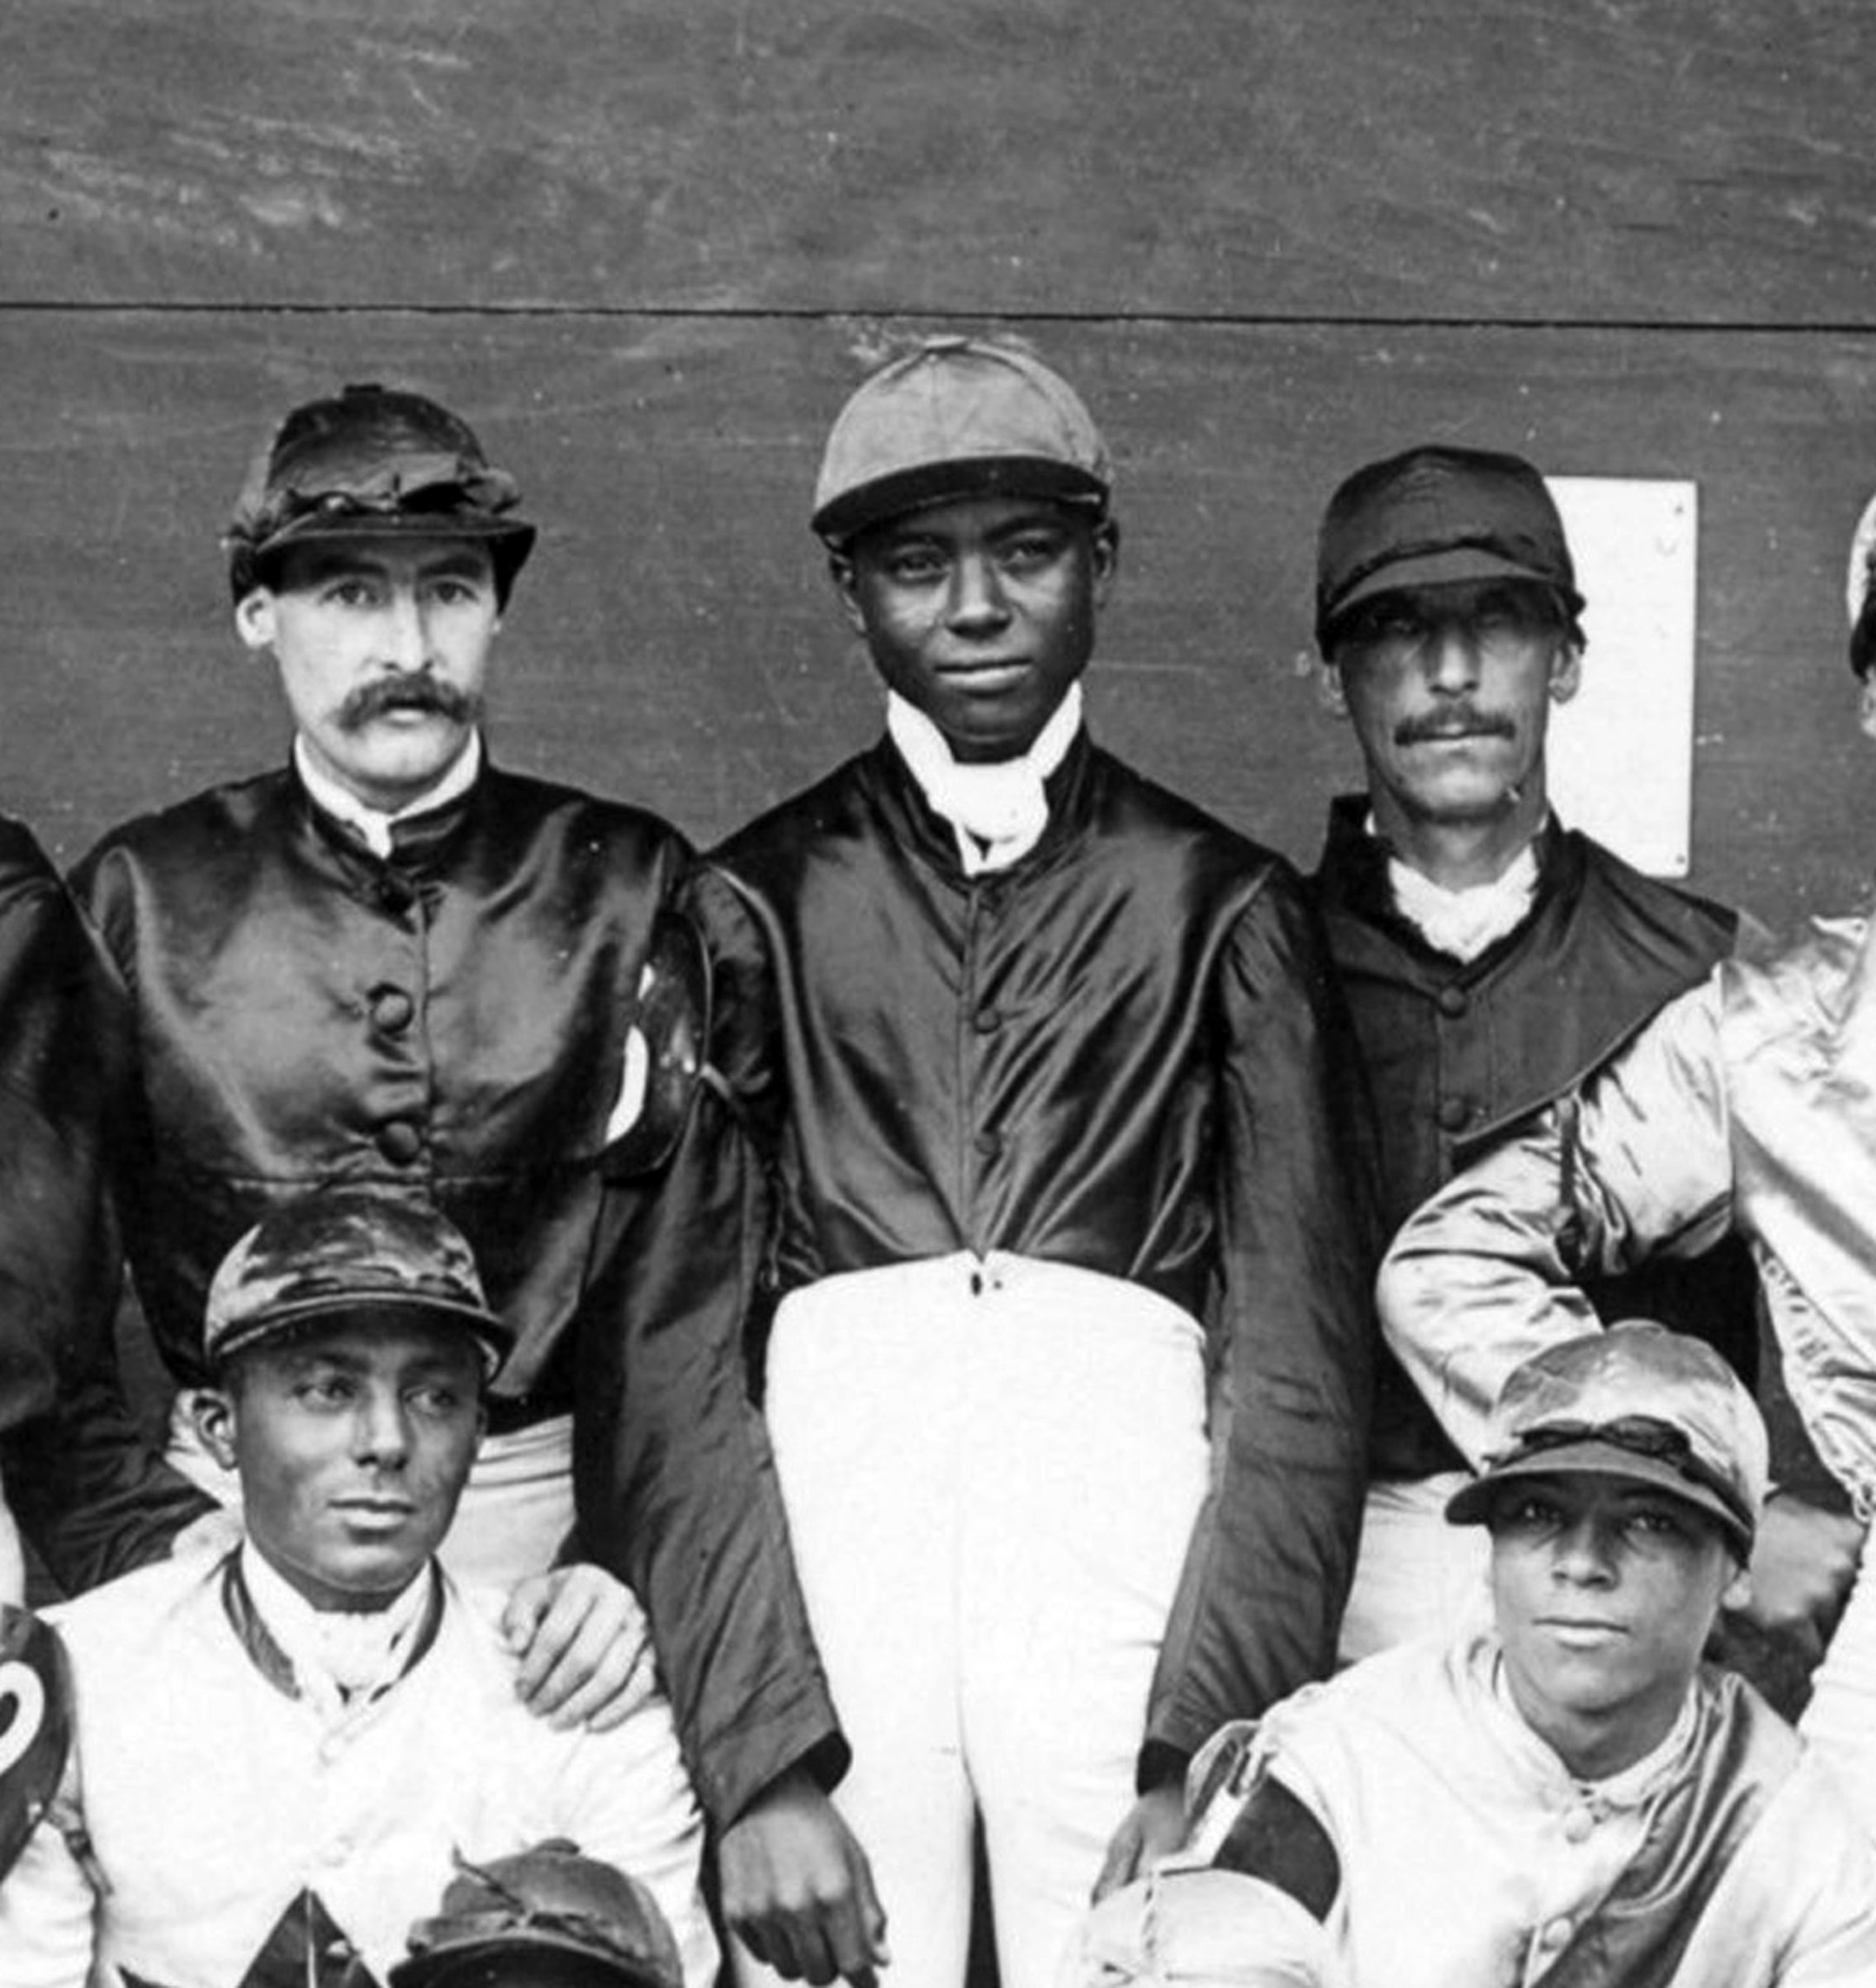 """Shelby """"Pike"""" Barnes (center) in a group portrait of a jockey colony (Keeneland Library Hemment Collection)"""